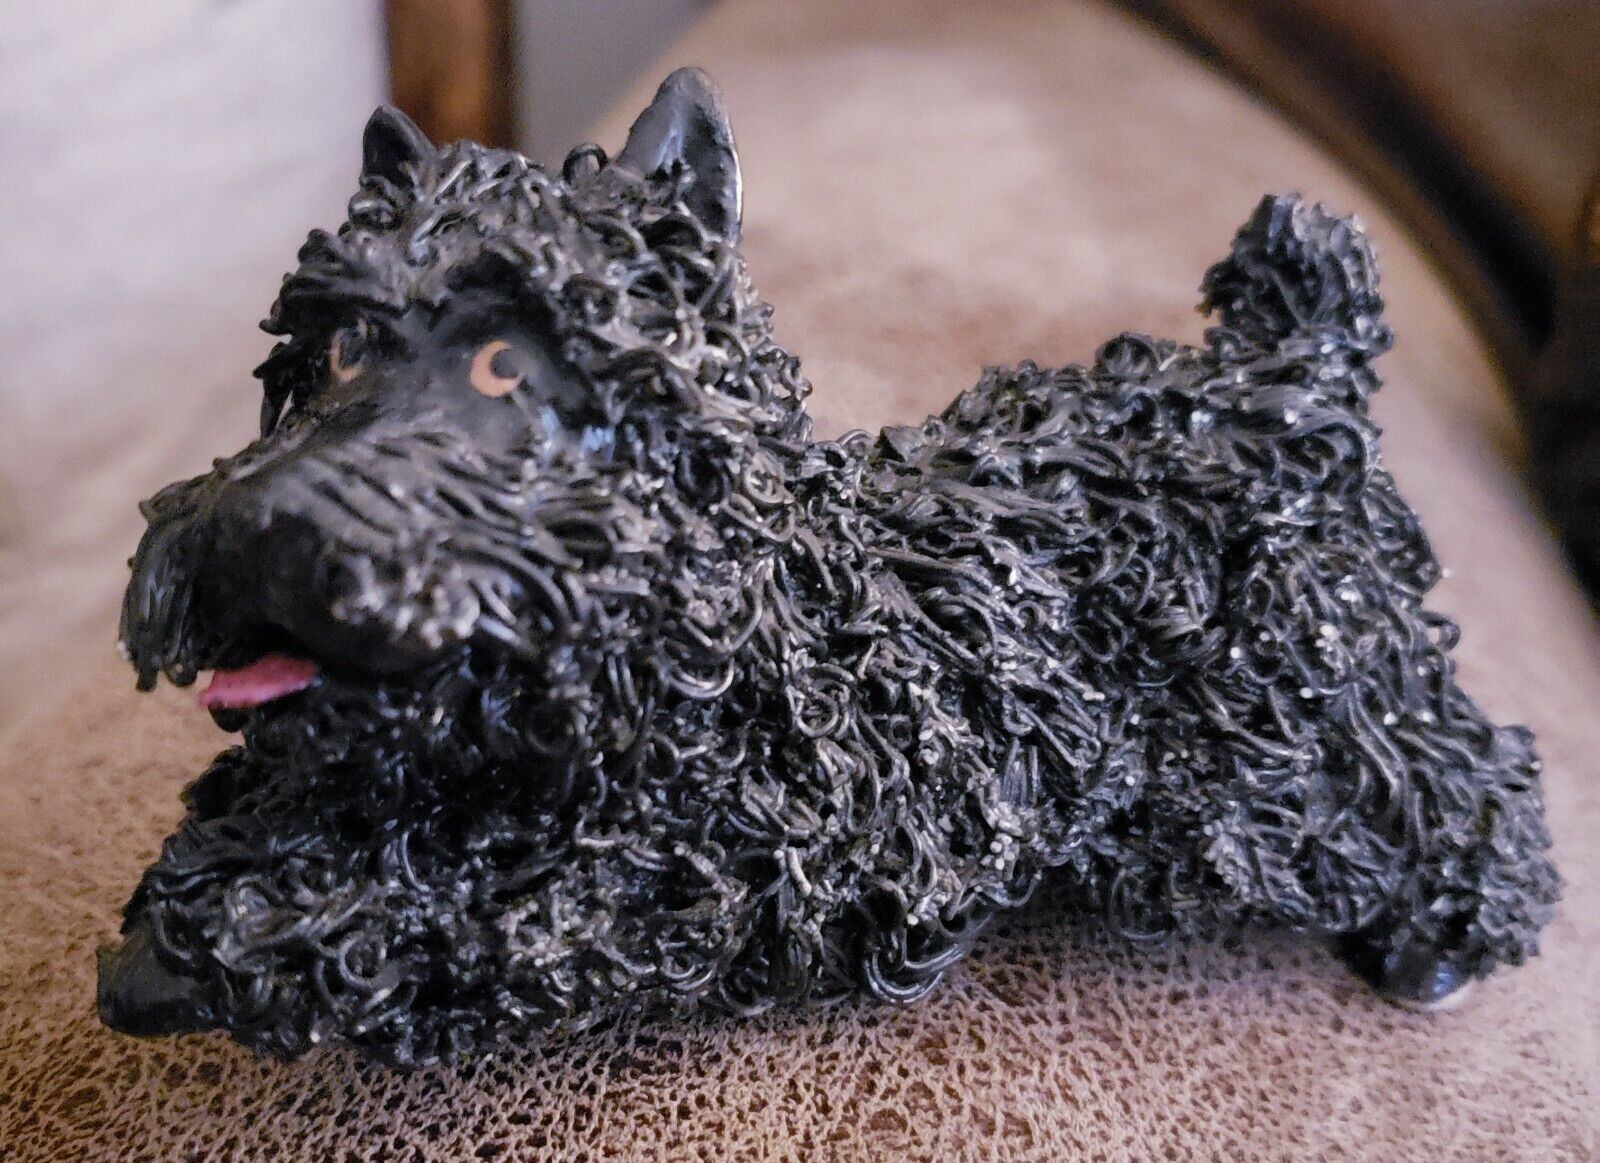 Vintage Spaghetti Noodle Schnauzer Dog Figurine Black/Grey...Excellent ...